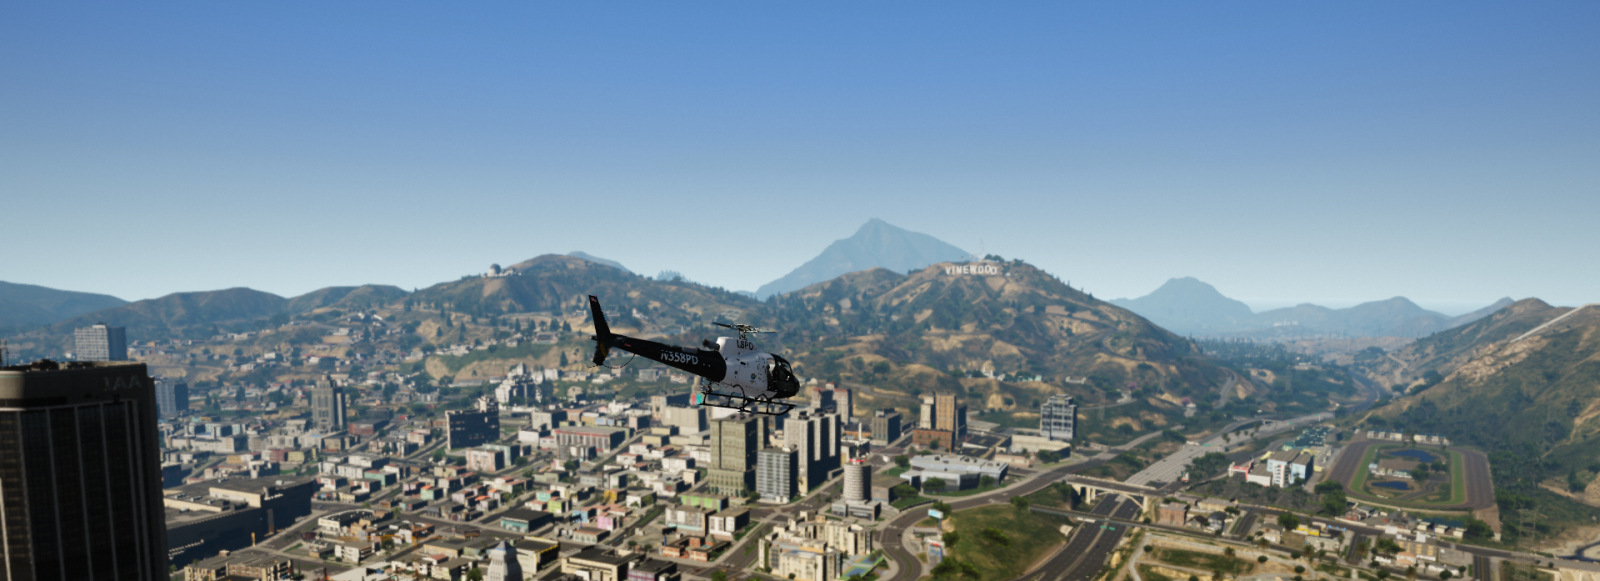 Flying Next To Vinewood